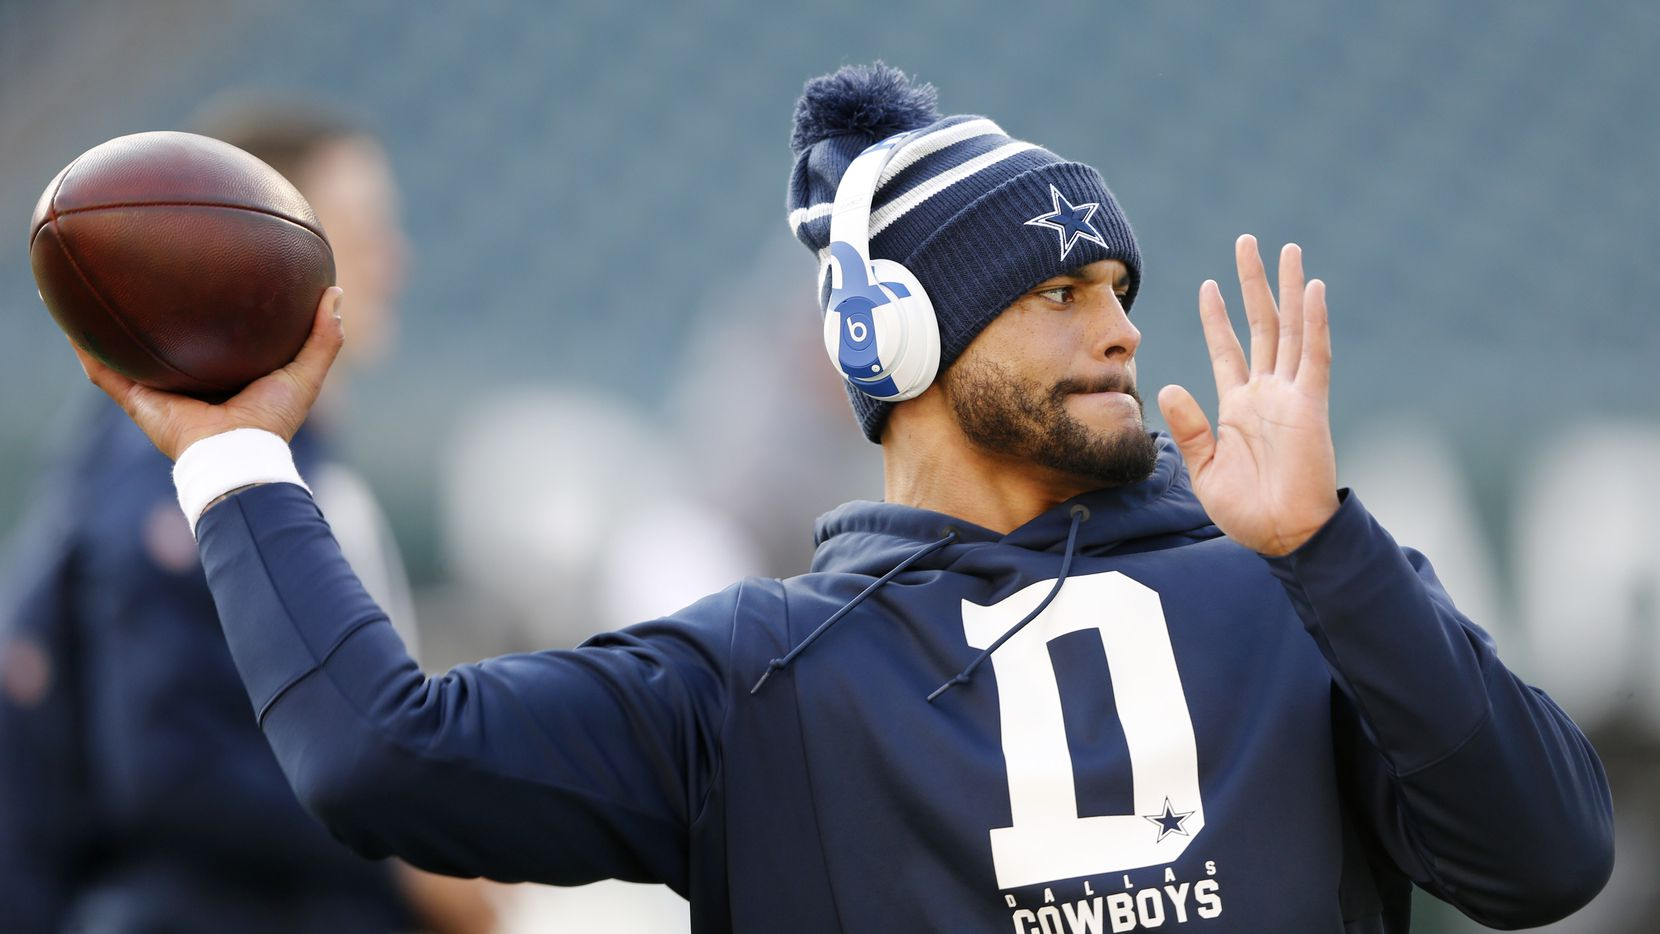 Dallas Cowboys quarterback Dak Prescott (4) throws the ball before warmups prior to a game against the Philadelphia Eagles at Lincoln Financial Field in Philadelphia on Sunday, December 22, 2019.